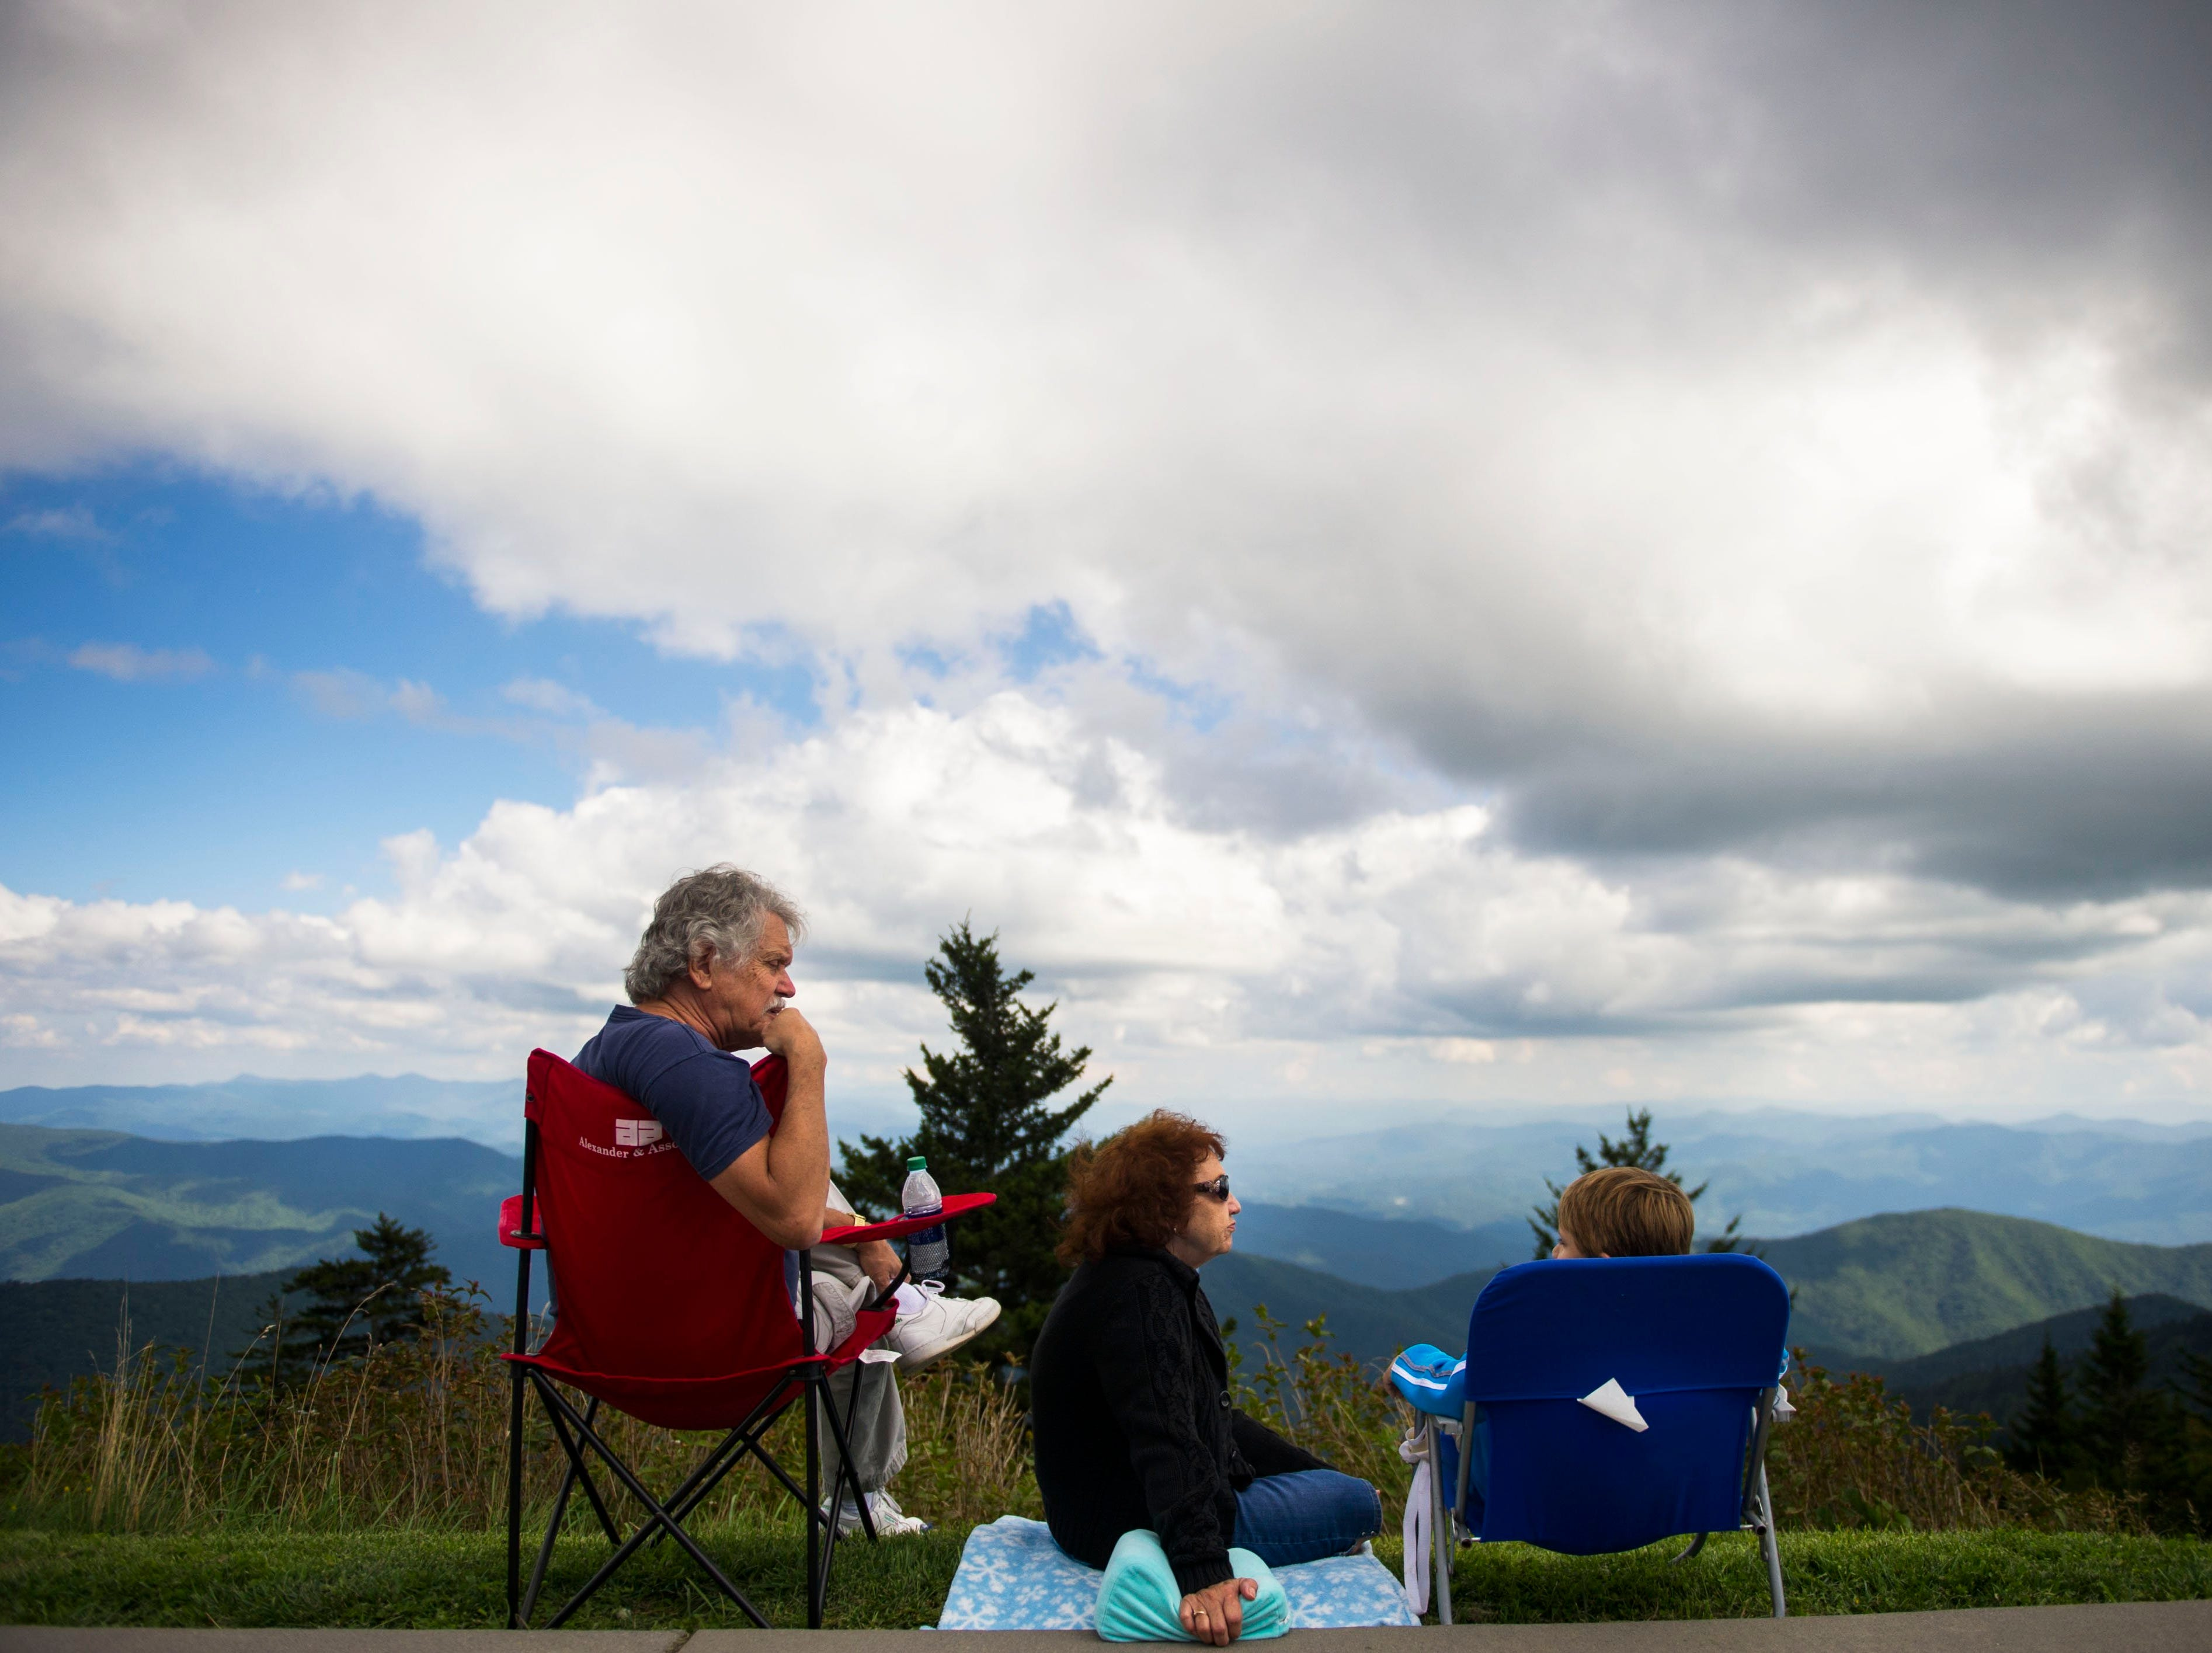 Bob and Sandra Farrell of Knoxville sit with their great-grandson who they are raising, Neo Waller, 6, in Great Smoky Mountains National Park near Clingmans Dome on Saturday, Sept. 3, 2016. It was Neo's first time in the mountains. (CAITIE MCMEKIN/NEWS SENTINEL)